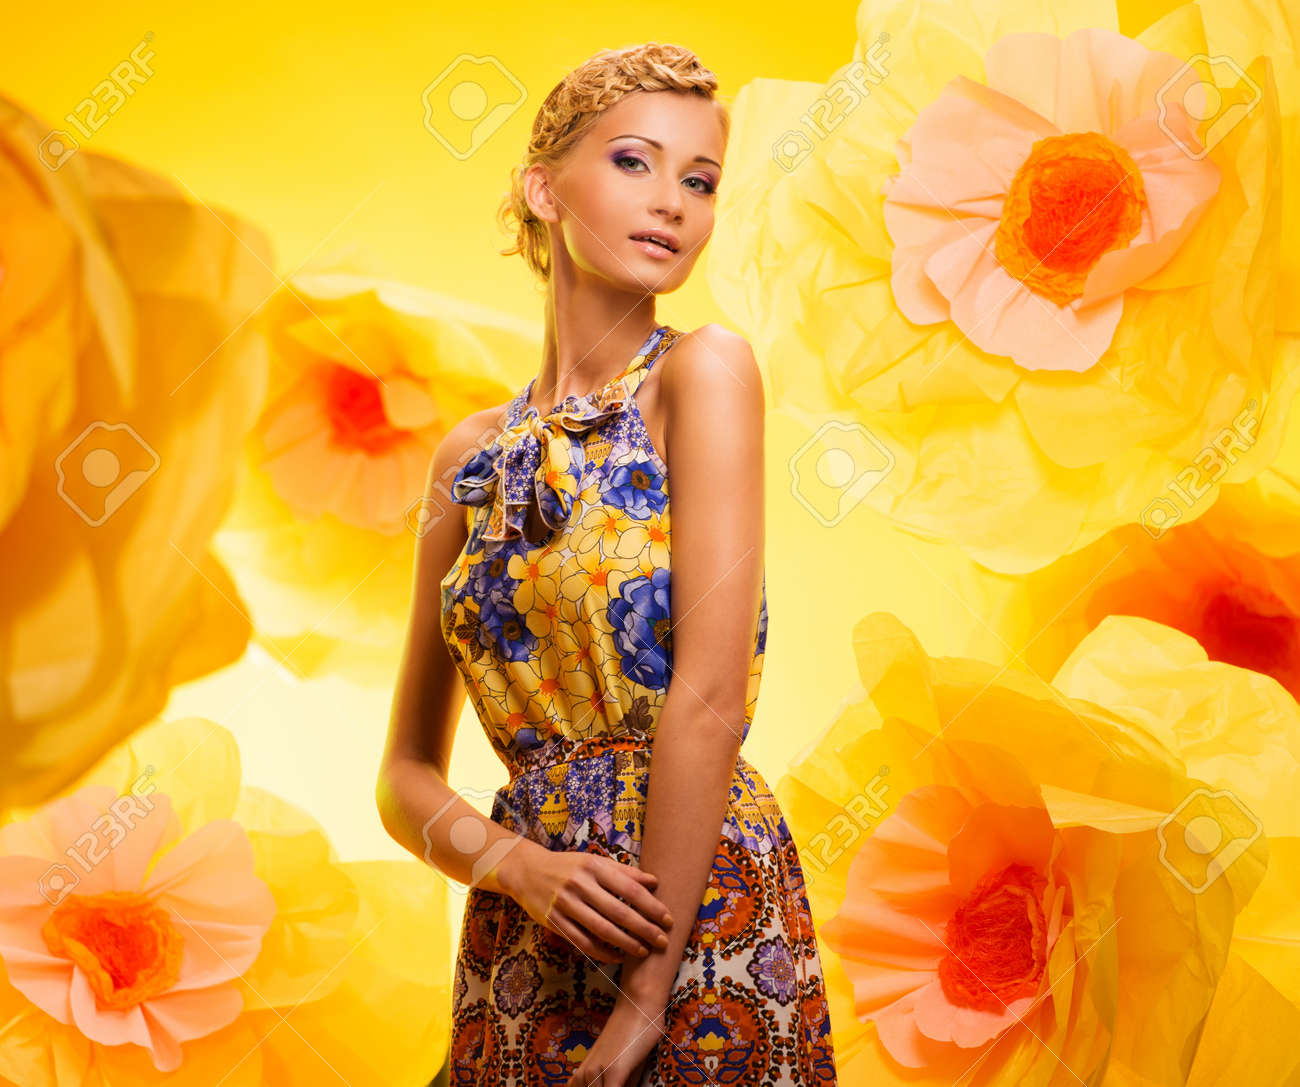 Beautiful young blond woman in colourful dress among big yellow flowers Stock Photo - 19225031